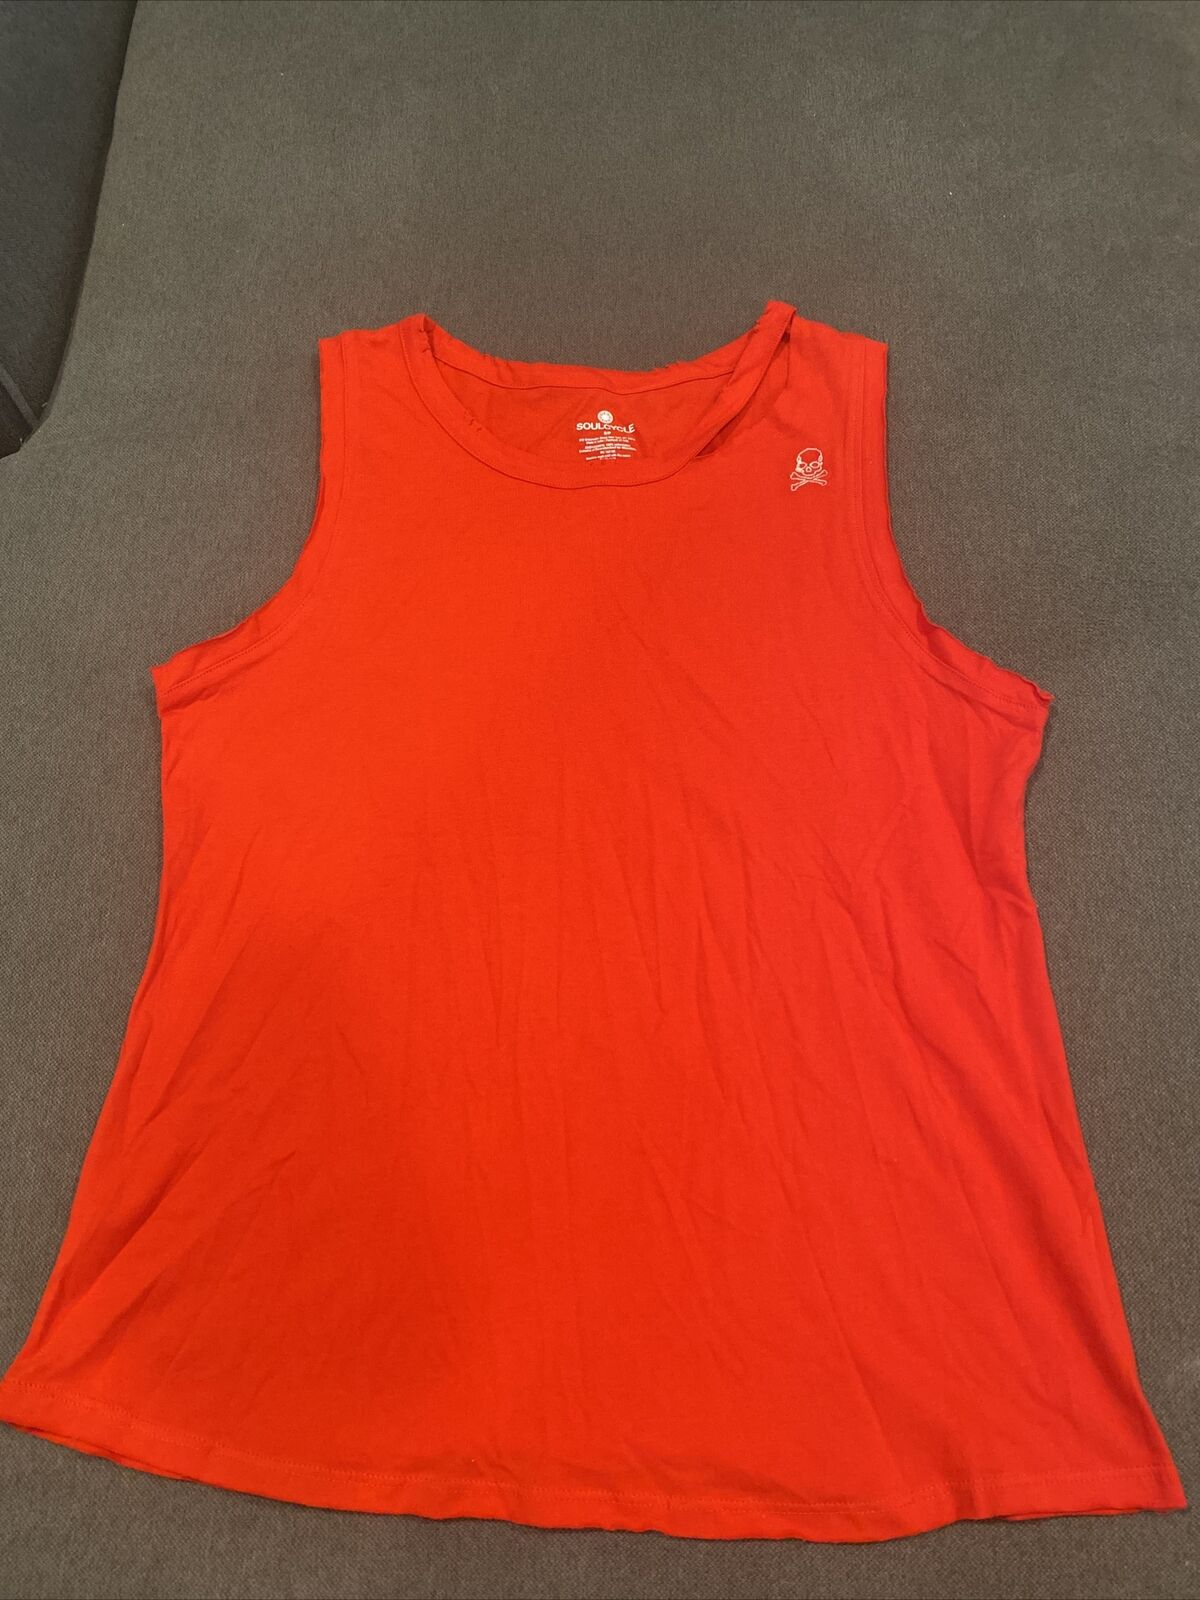 Soul Cycle Size Medium Ride And Shine Star Red Muscle Sleeveless Tank Top